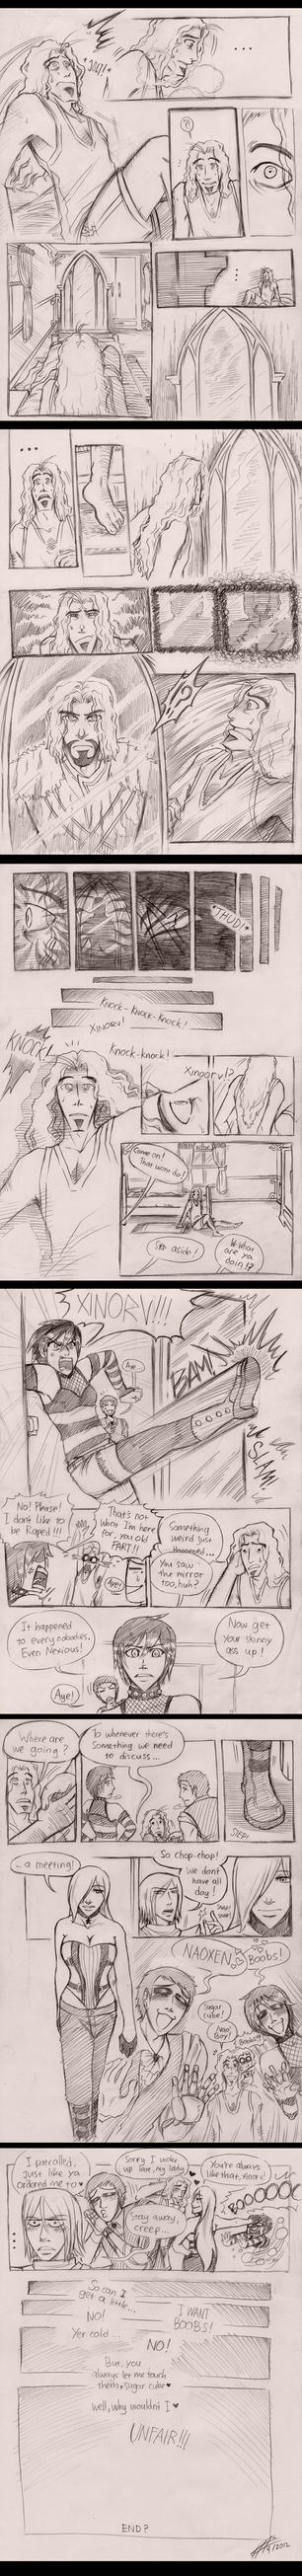 Xinorv: The Battle (COMIC) by lupitard